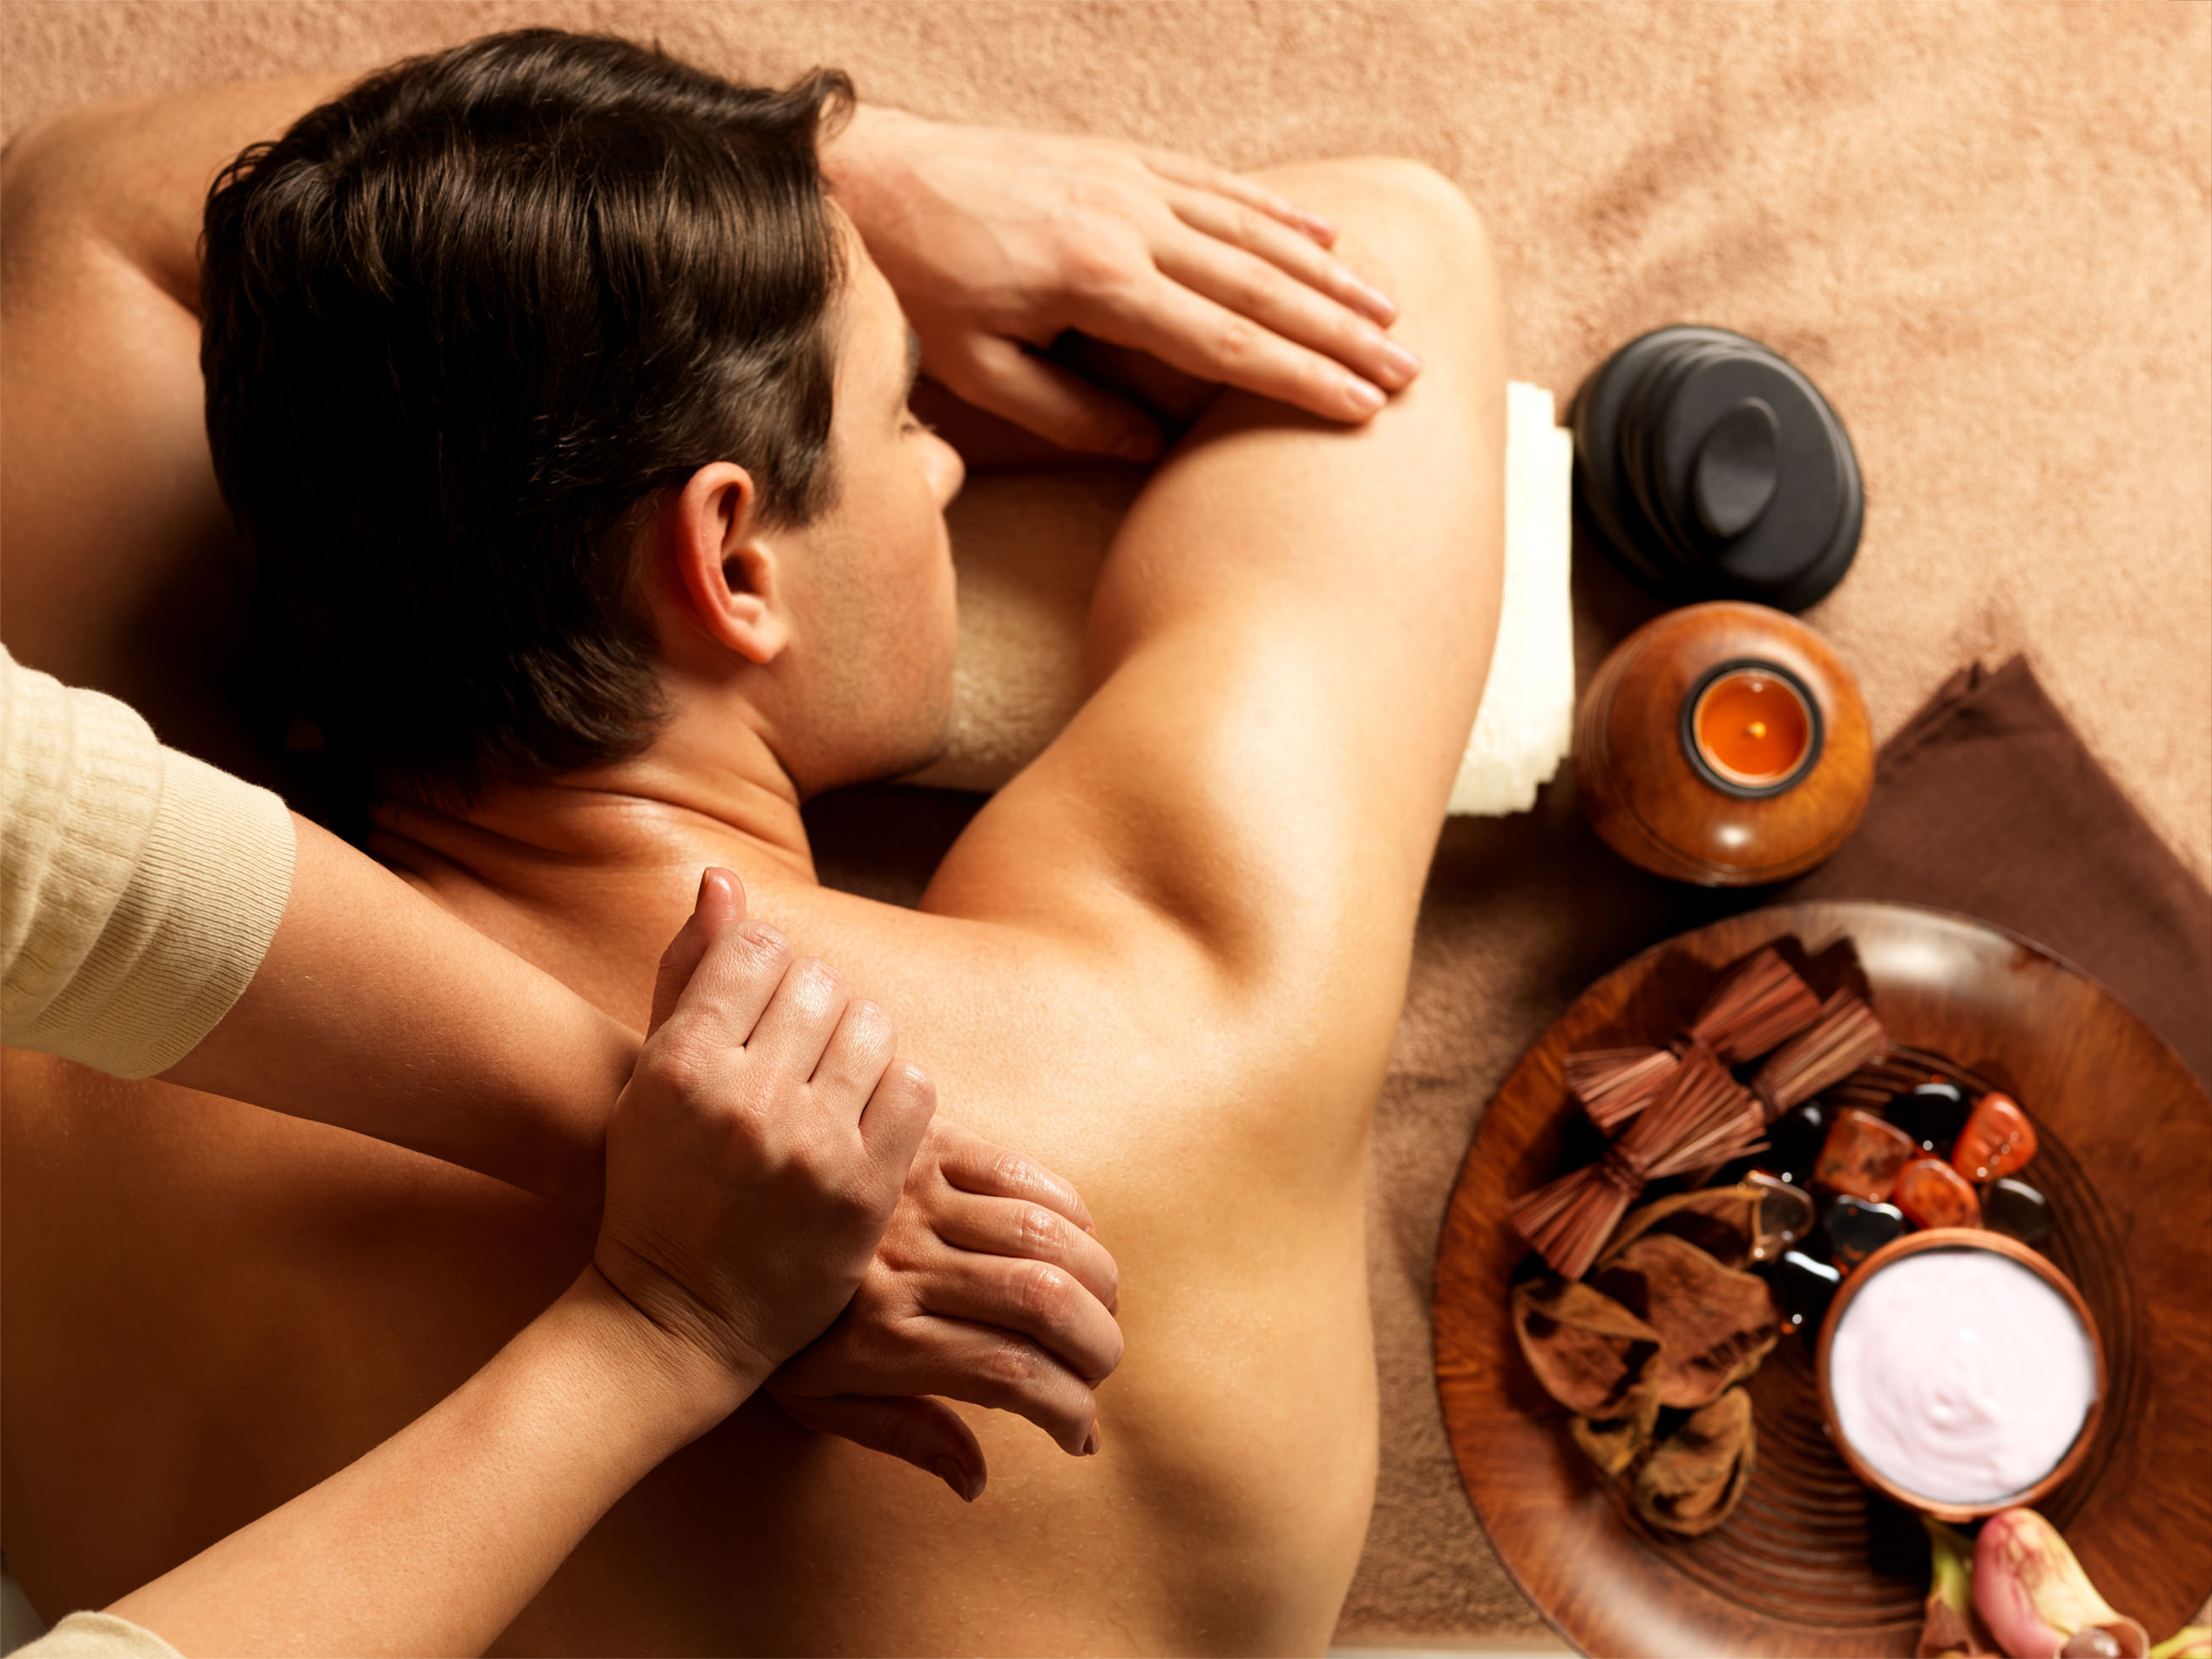 Let Dad enjoy a pampering 'Pure Bliss' massage on Father's Day